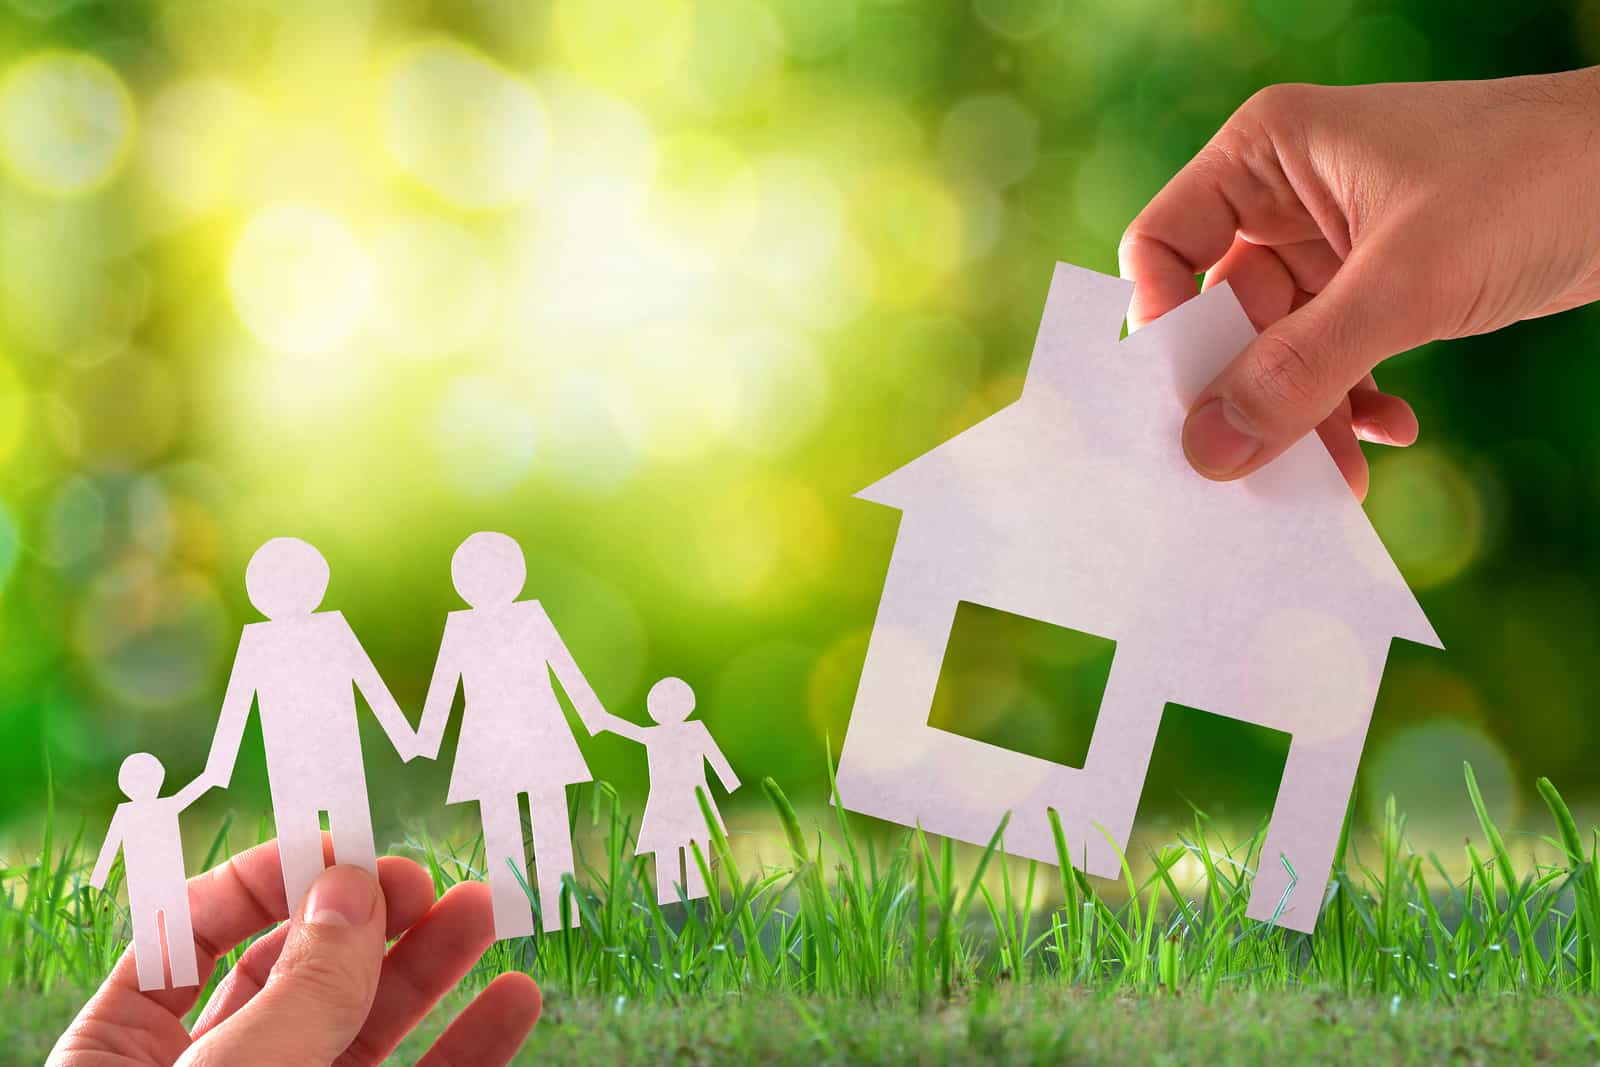 Hispanic Population Drives Growth in Homeownership for a Third Consecutive Year